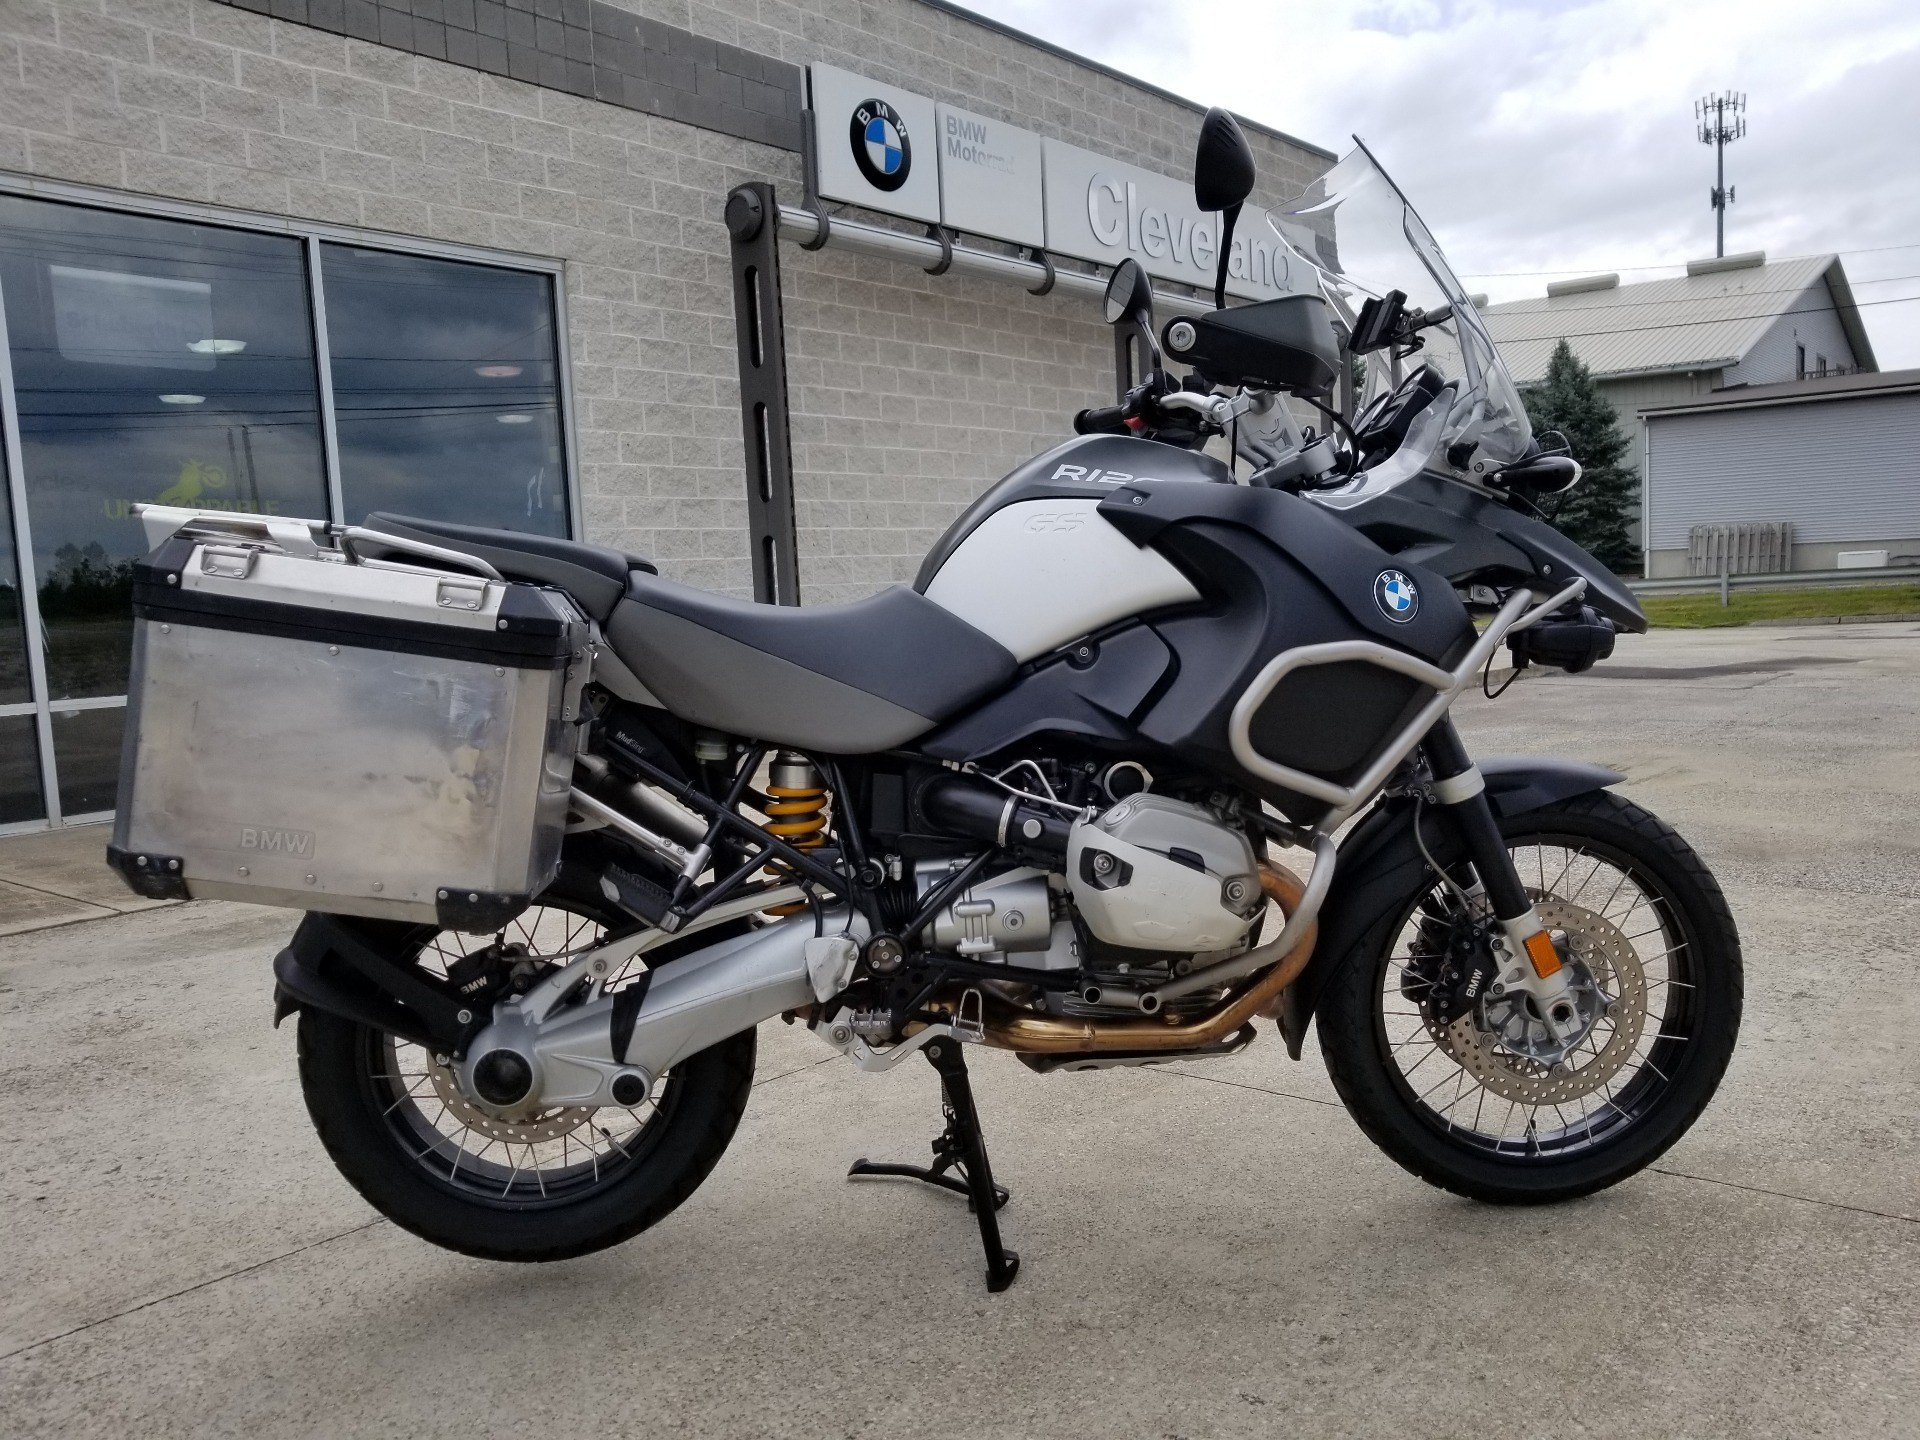 Used 2011 Bmw R 1200 Gs Adventure Motorcycles In Aurora Oh Stock